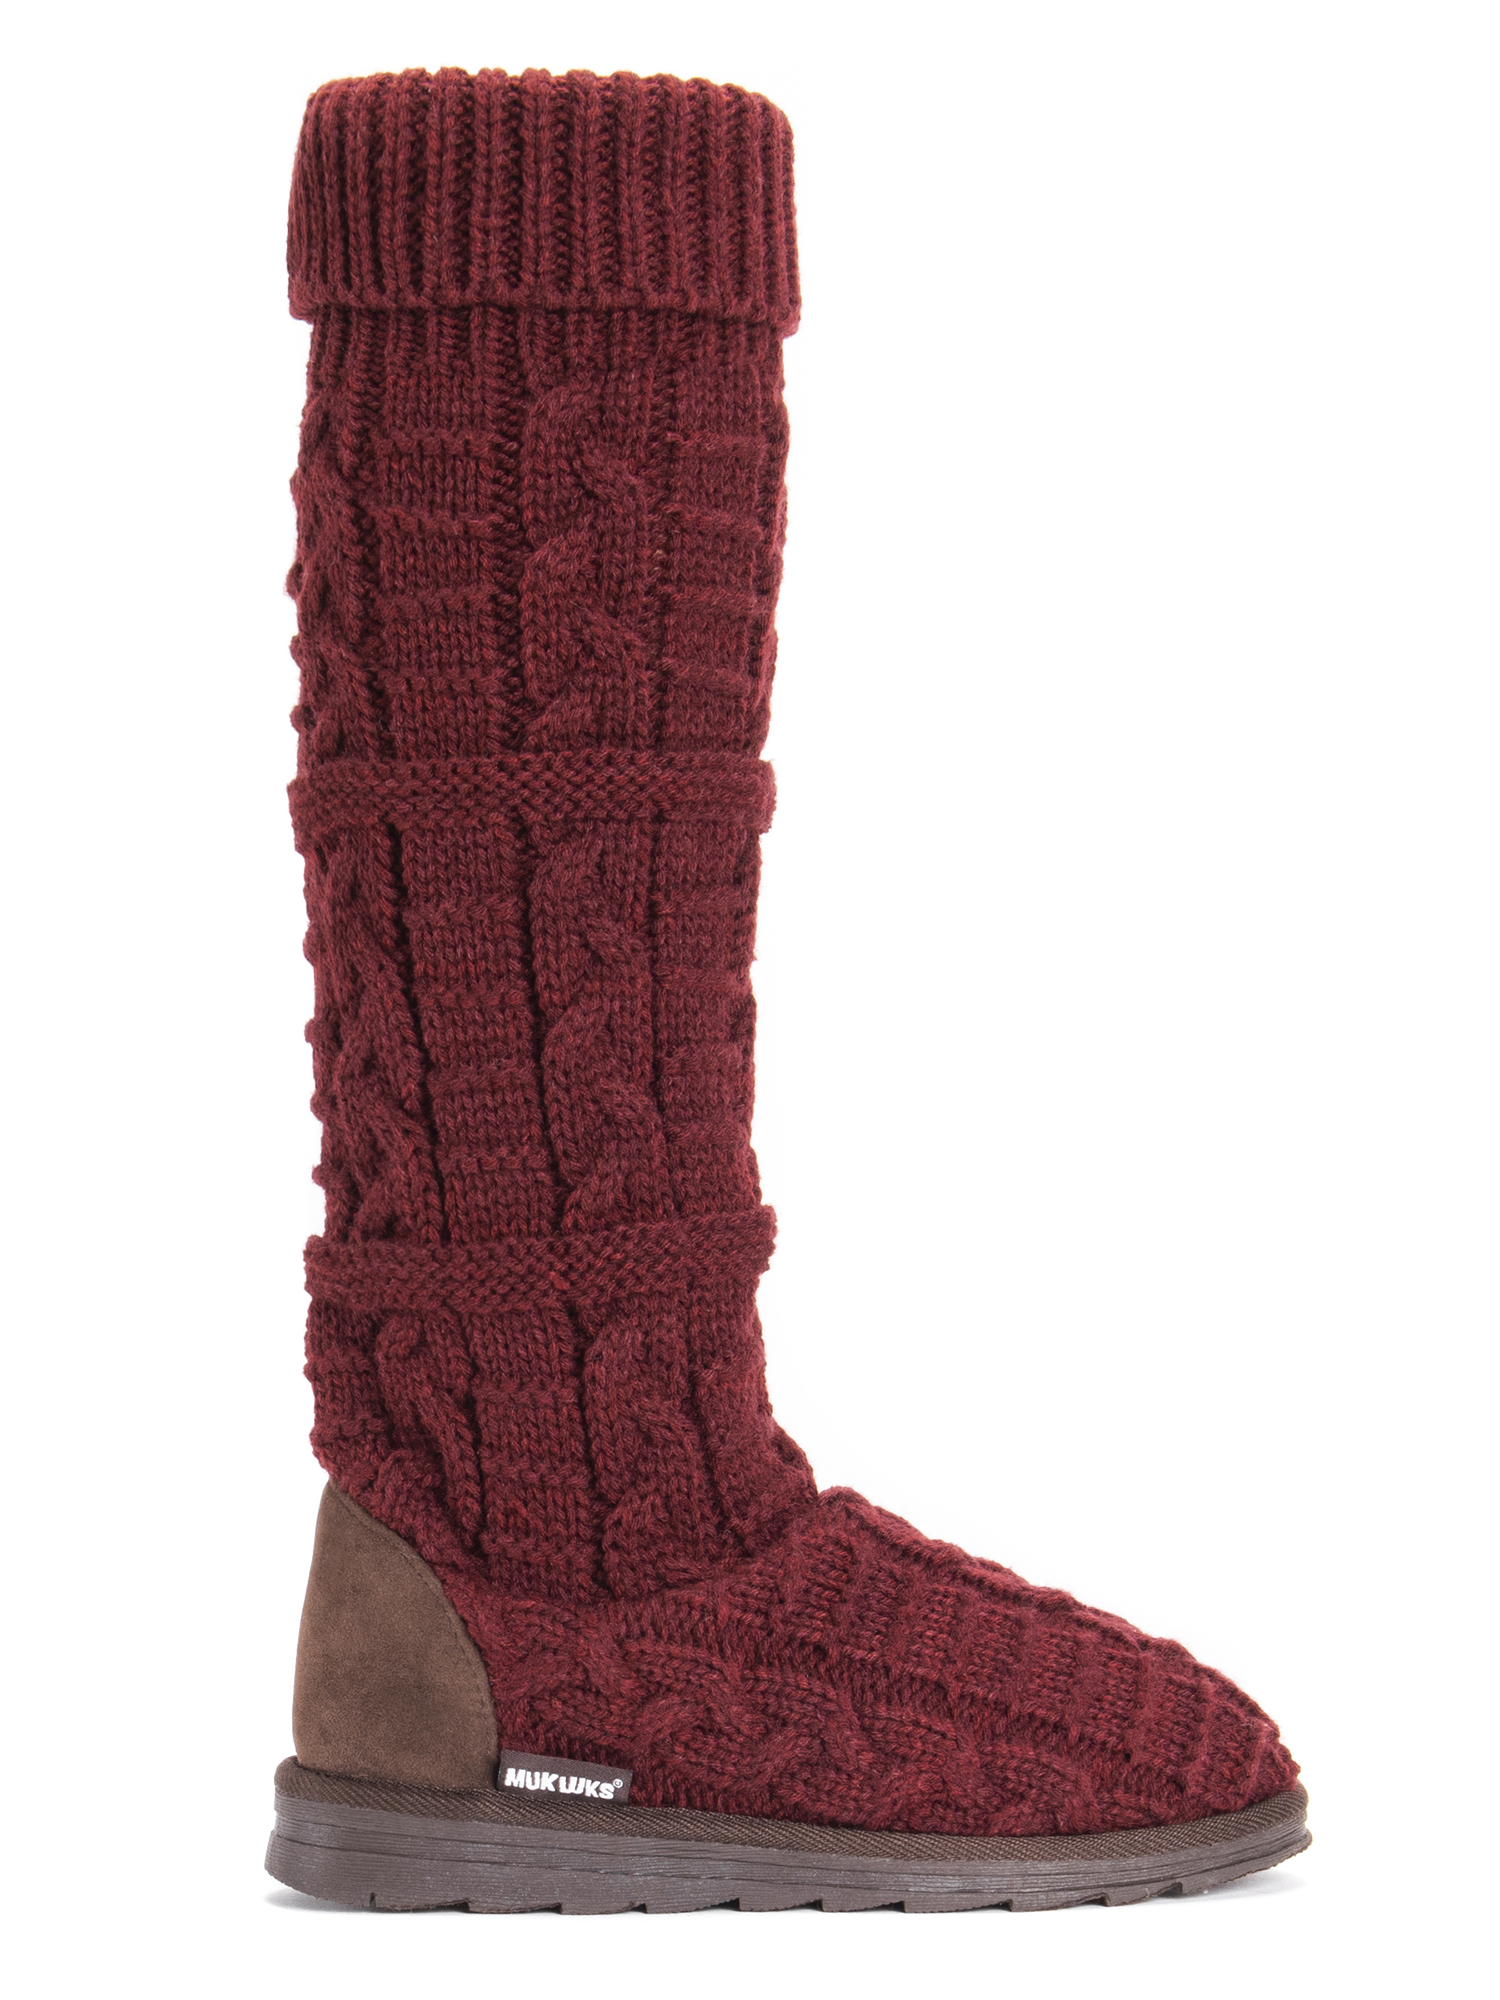 Muk Luks - MUK LUKS® Women s Shelly Slipper Boot - Walmart.com 56fab747b